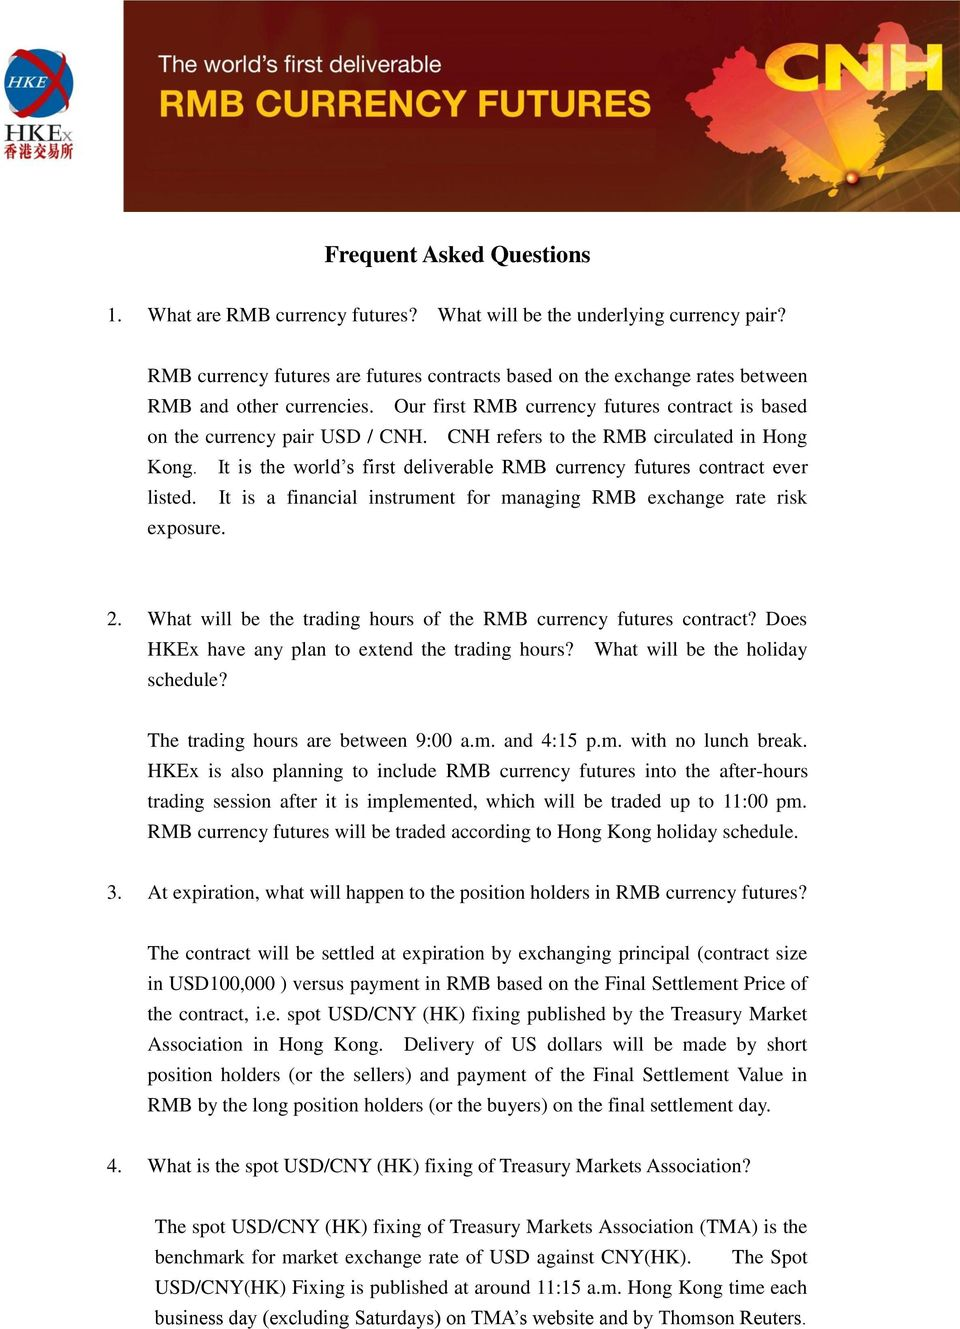 CNH refers to the RMB circulated in Hong Kong. It is the world s first deliverable RMB currency futures contract ever listed. It is a financial instrument for managing RMB exchange rate risk exposure.